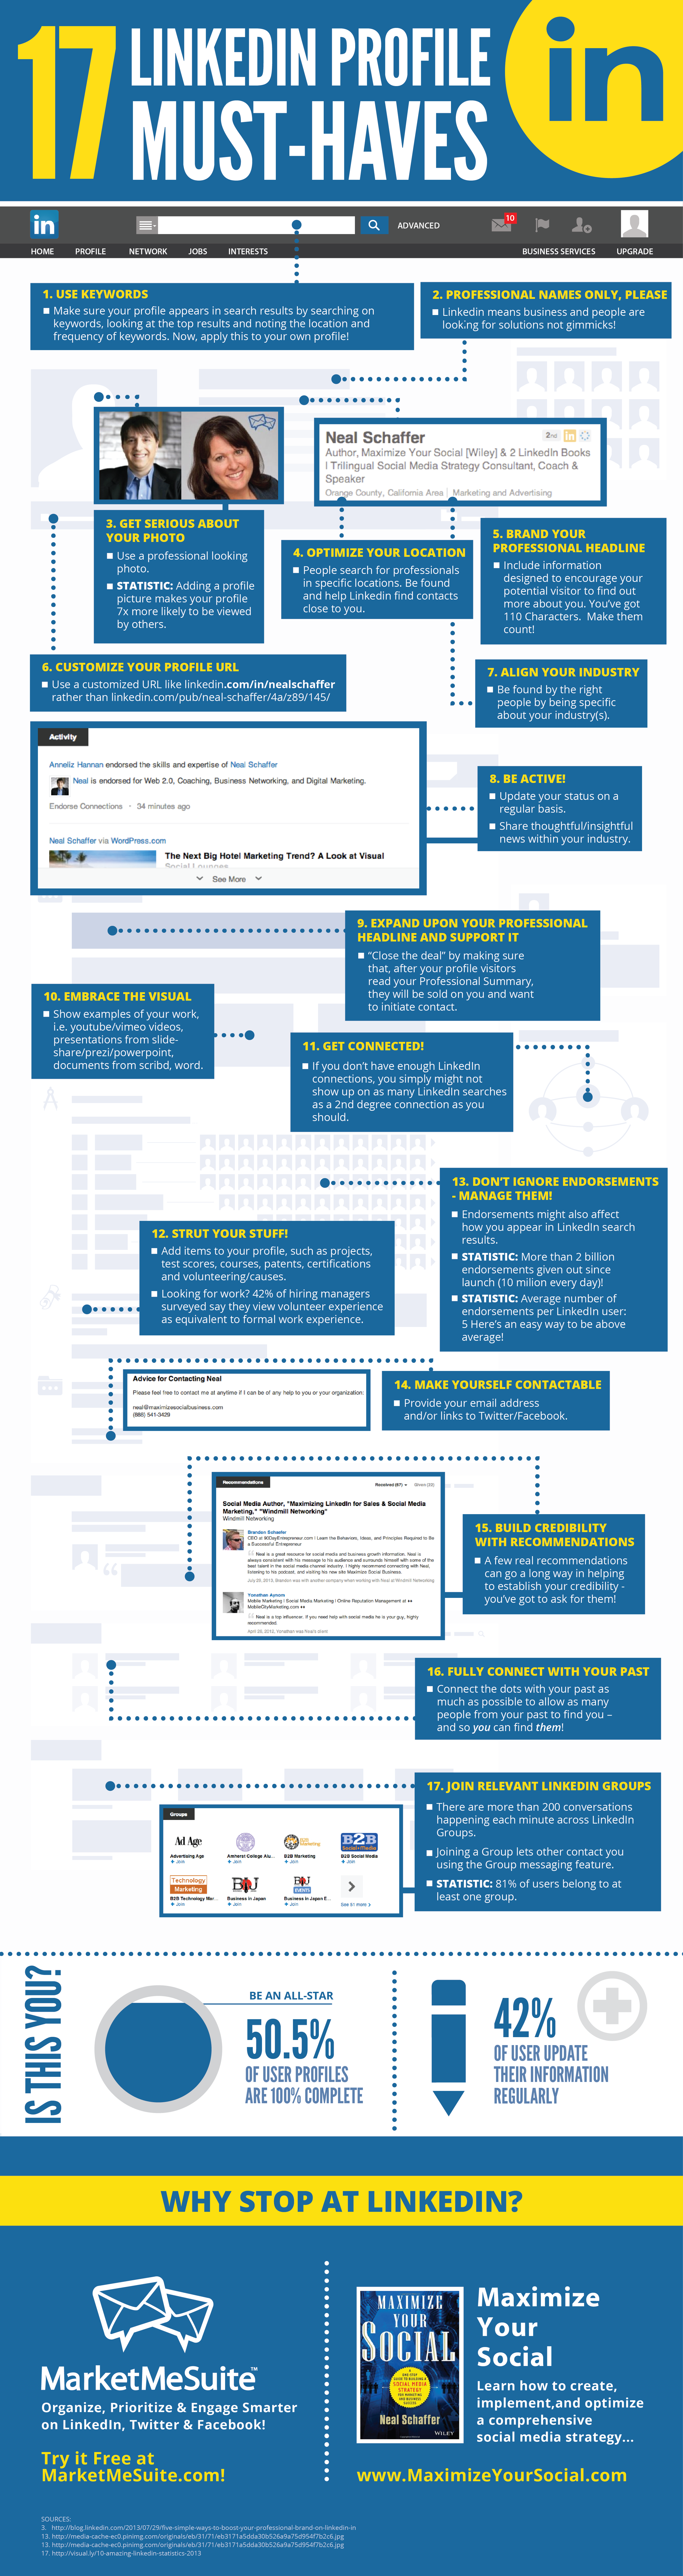 the ultimate linkedin profile tips summary infographic 8 stats